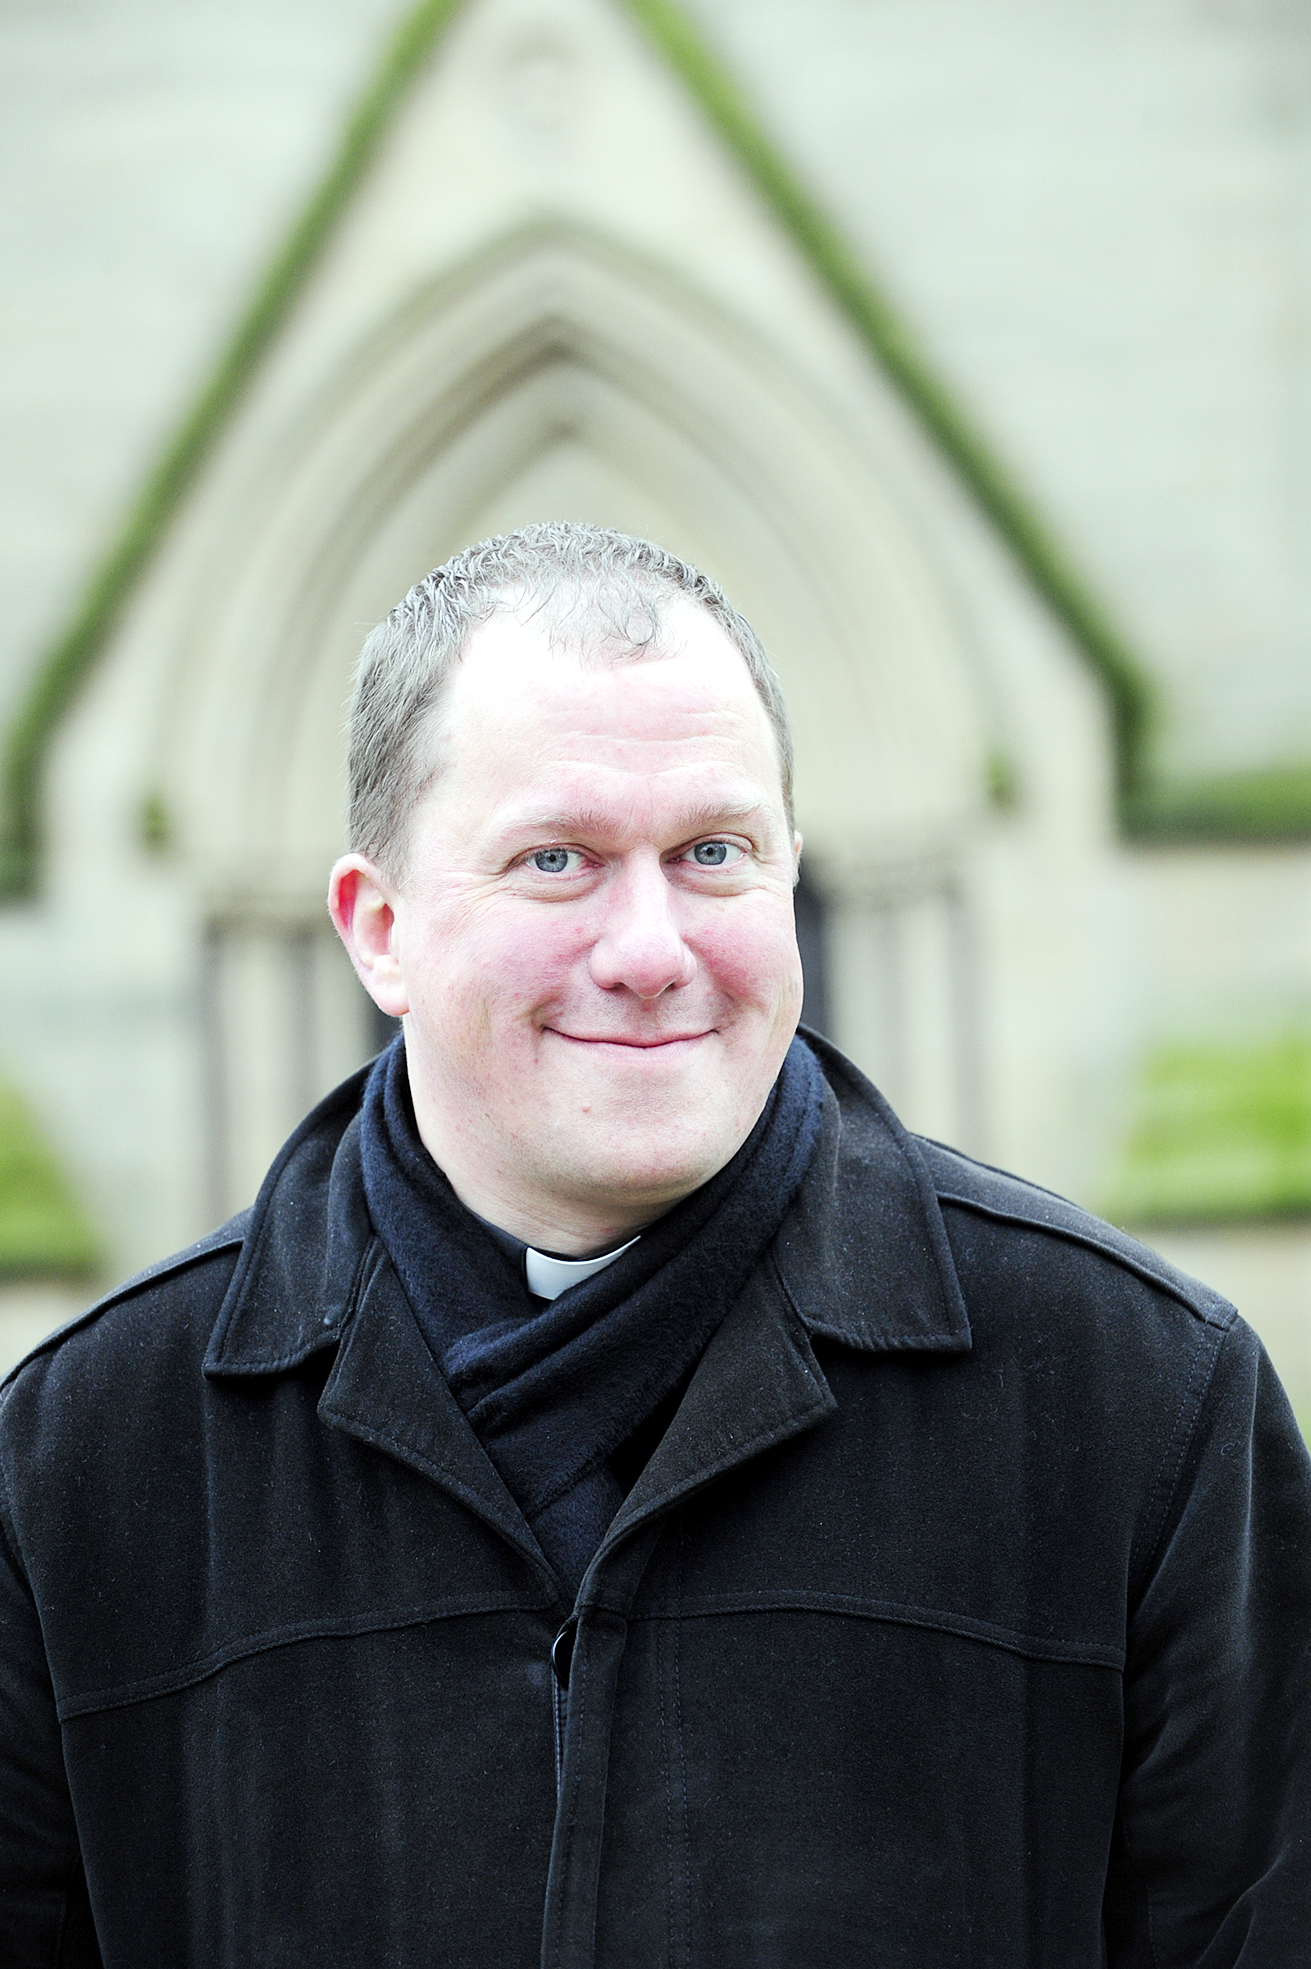 'Happiness is about contentment and peace', says Vicar of Bolton